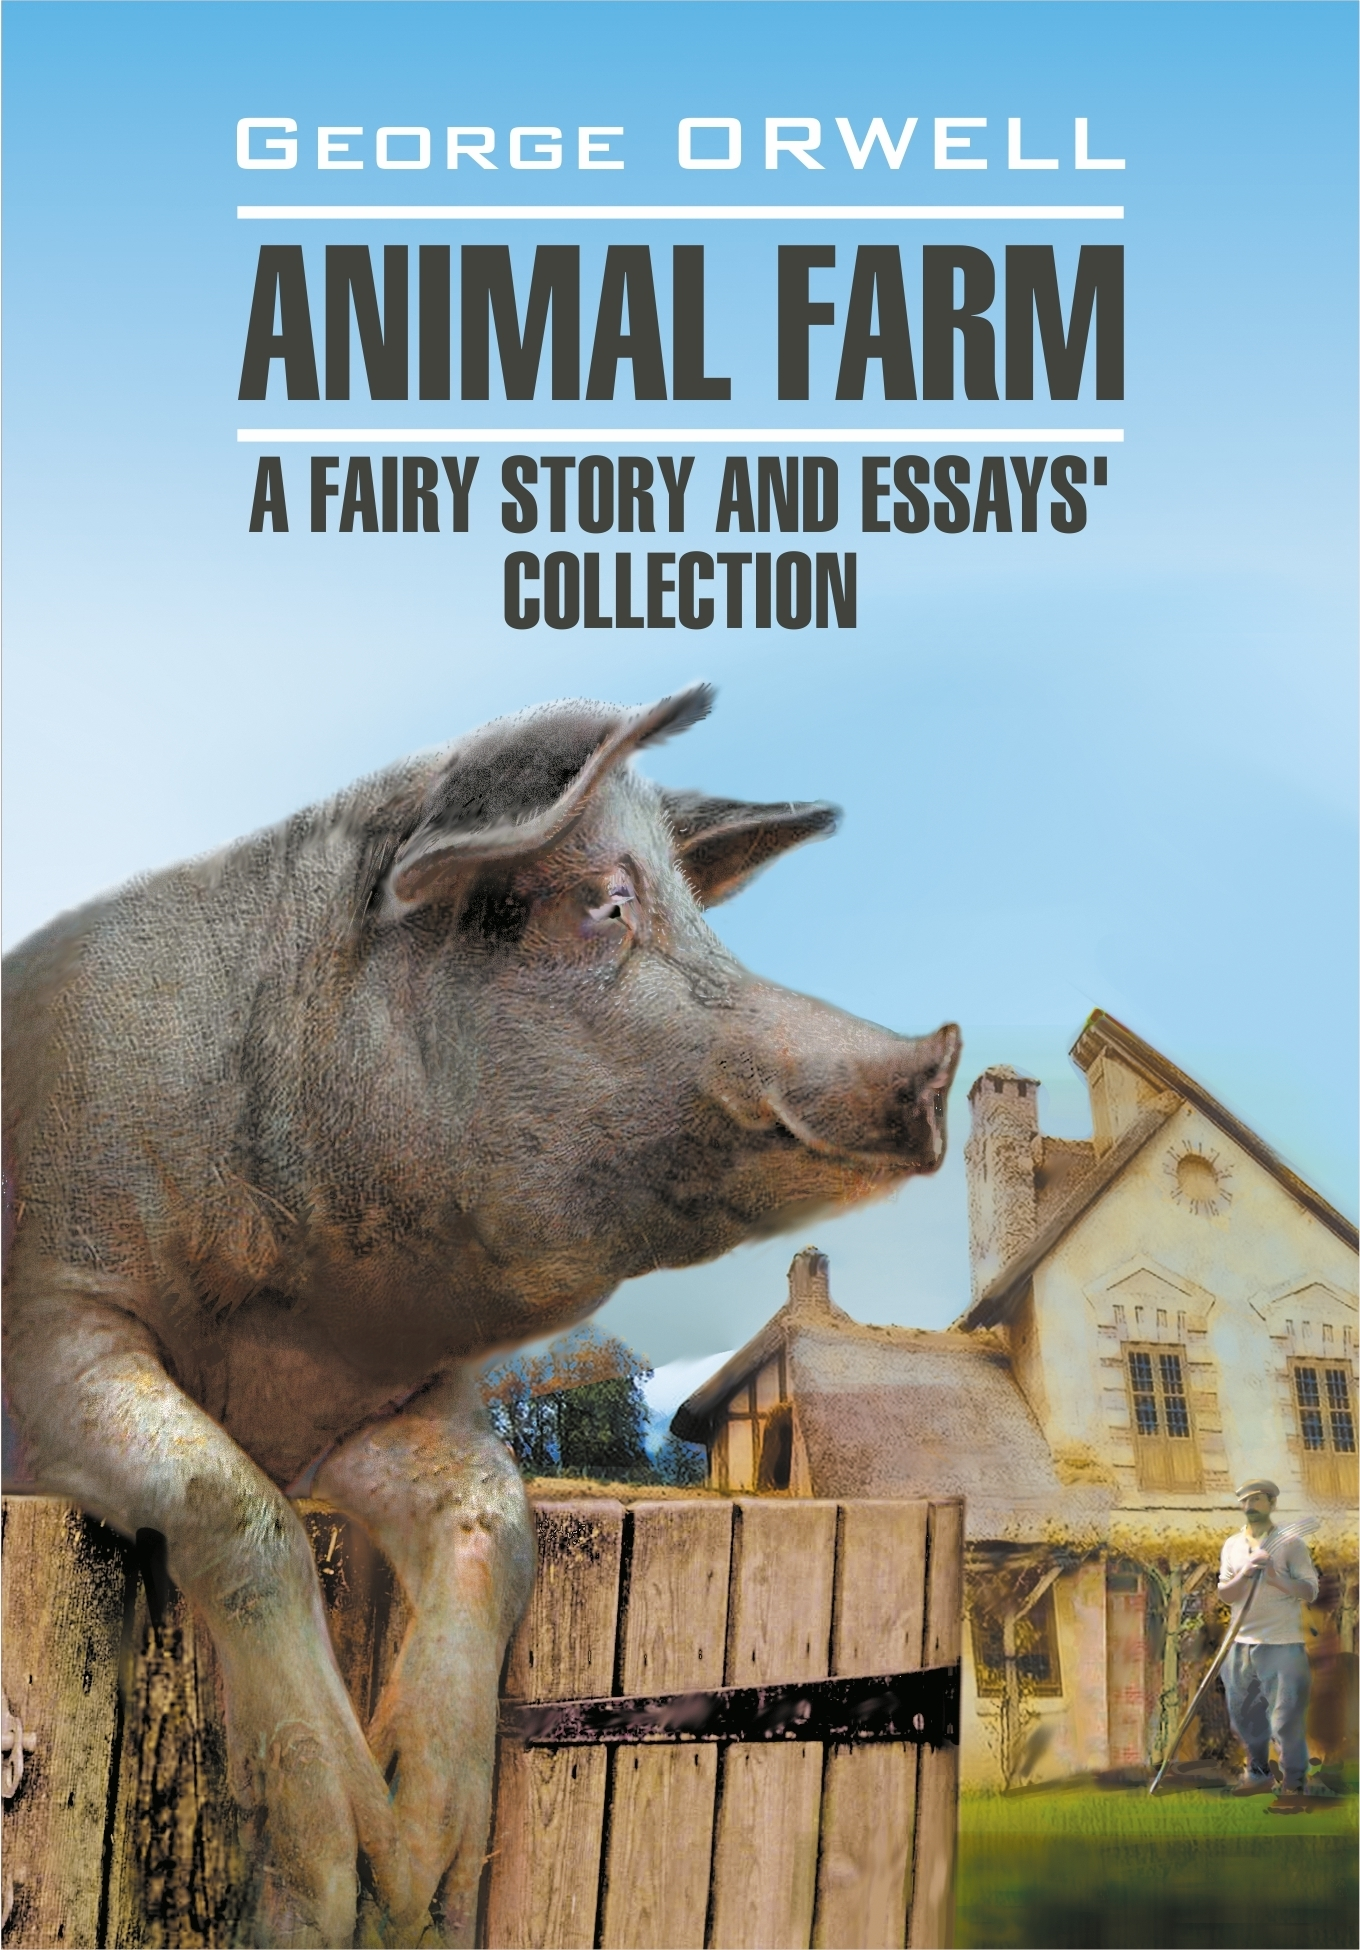 Animal Farm: a Fairy Story and Essay's Collection / Скотный двор и сборник эссе. Книга для чтения на английском языке – Джордж Оруэлл, Н. Демидова